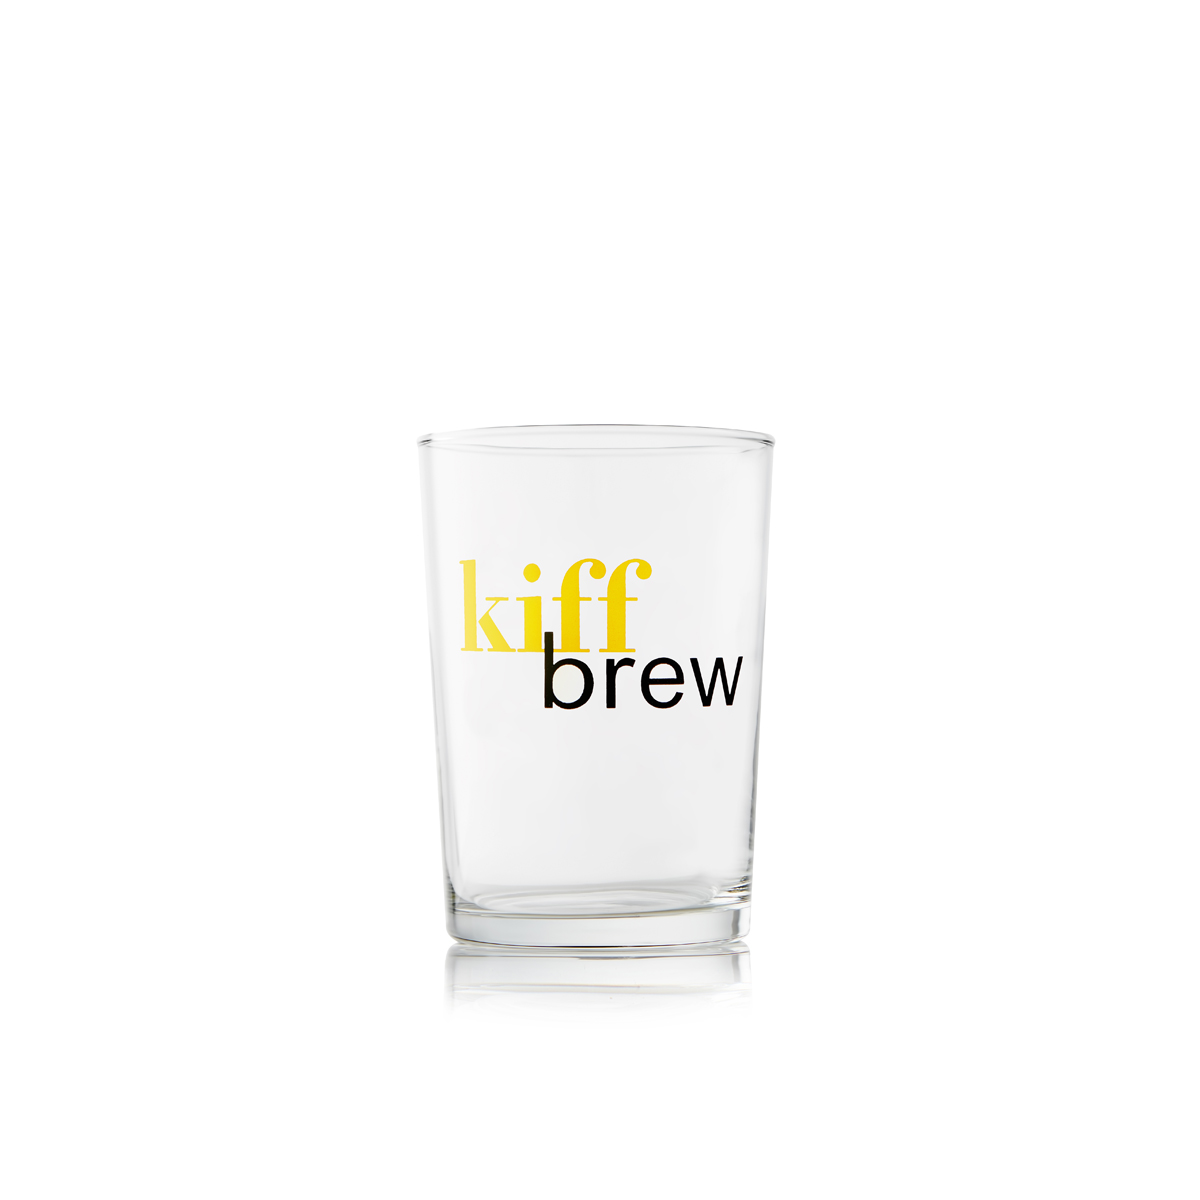 Brew Glass - Kiff Brew